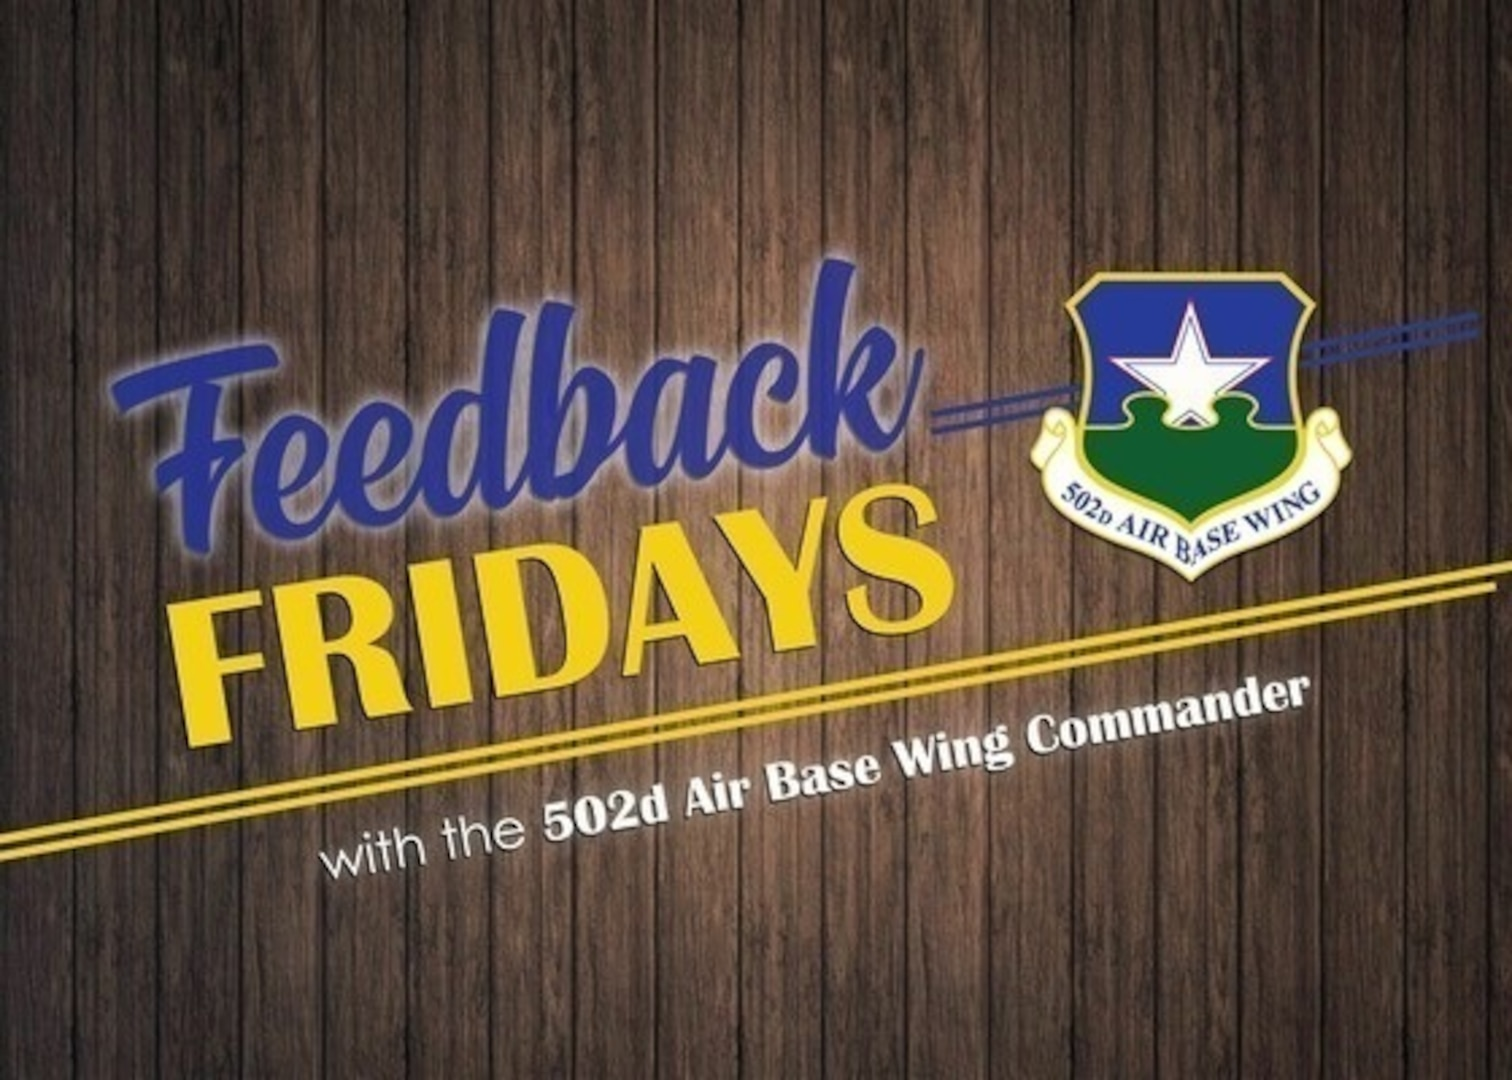 """If you have a question or concern, please send an email to jbsapublicaffairs@gmail.com using the subject line """"Feedback Fridays."""" Questions will be further researched and published as information becomes available."""